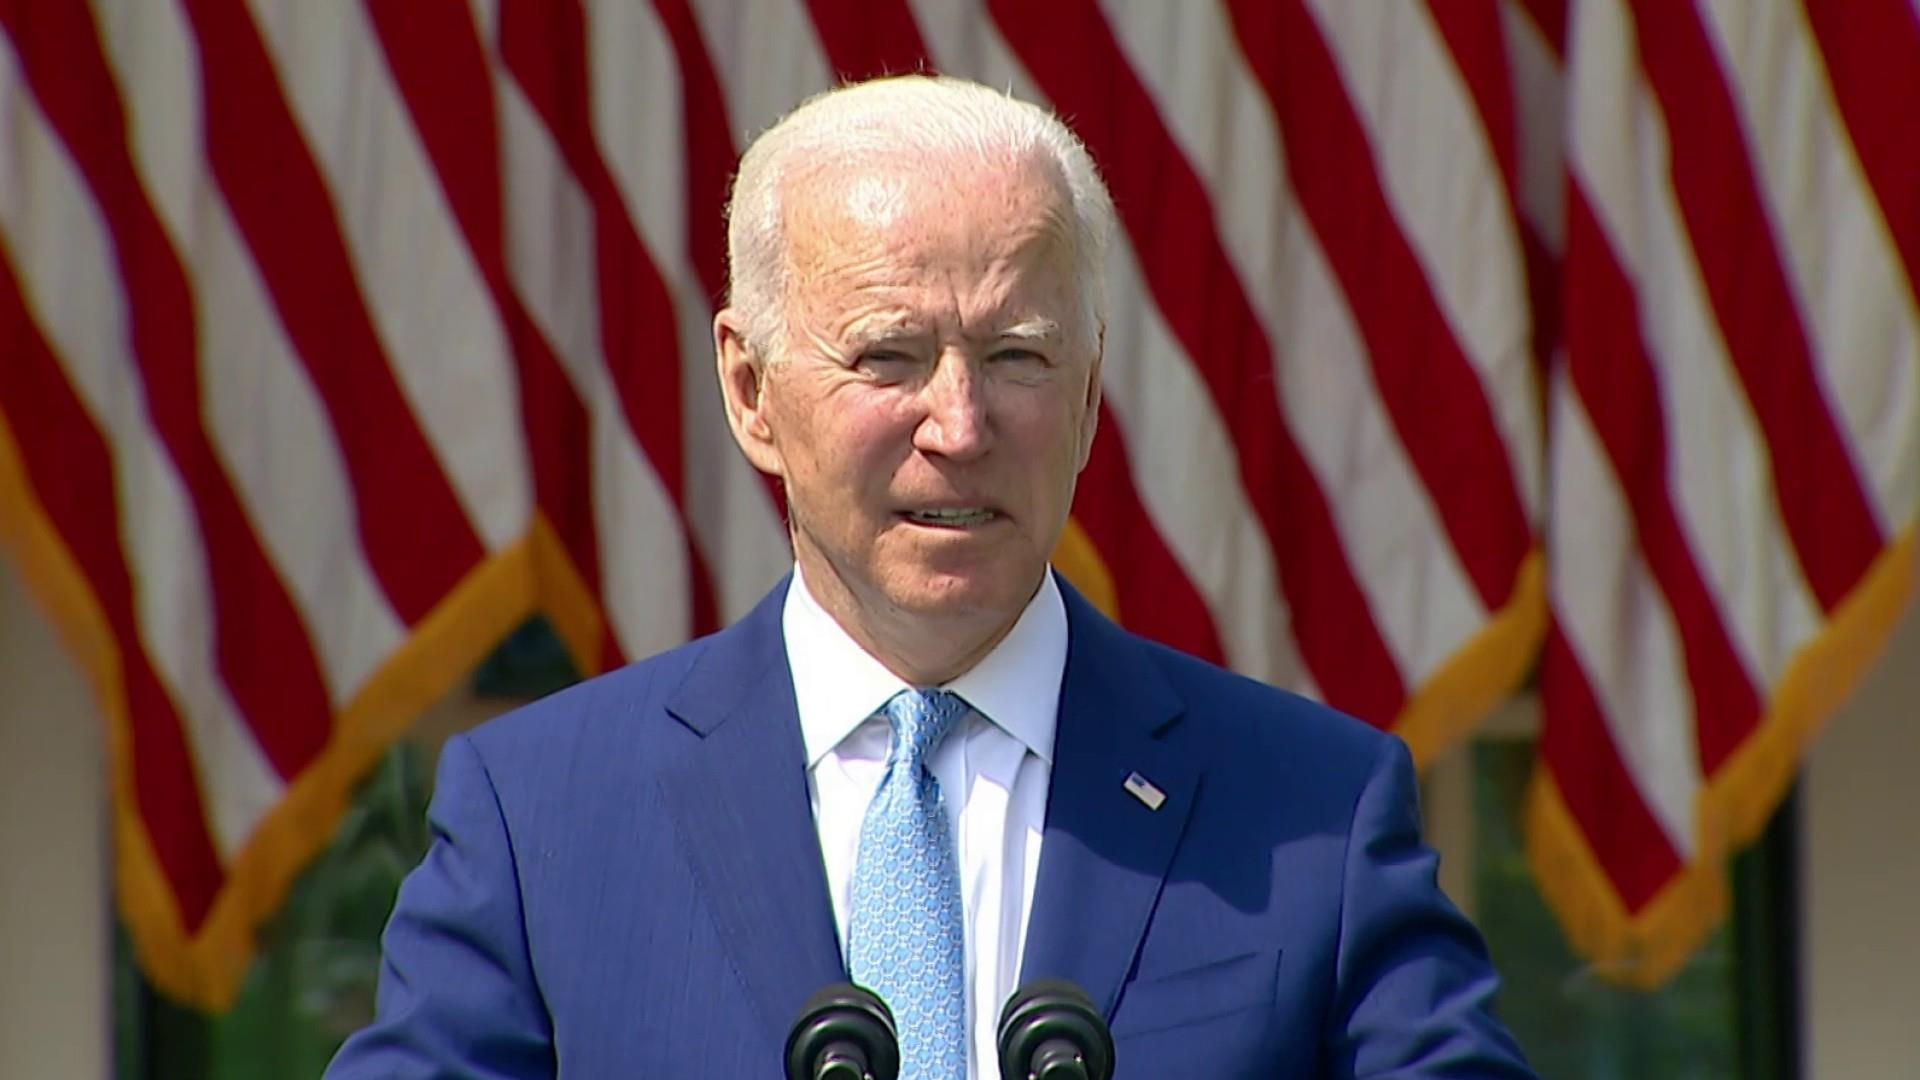 Biden moves to curb gun violence as congressional GOP holds action at thoughts and prayers thumbnail